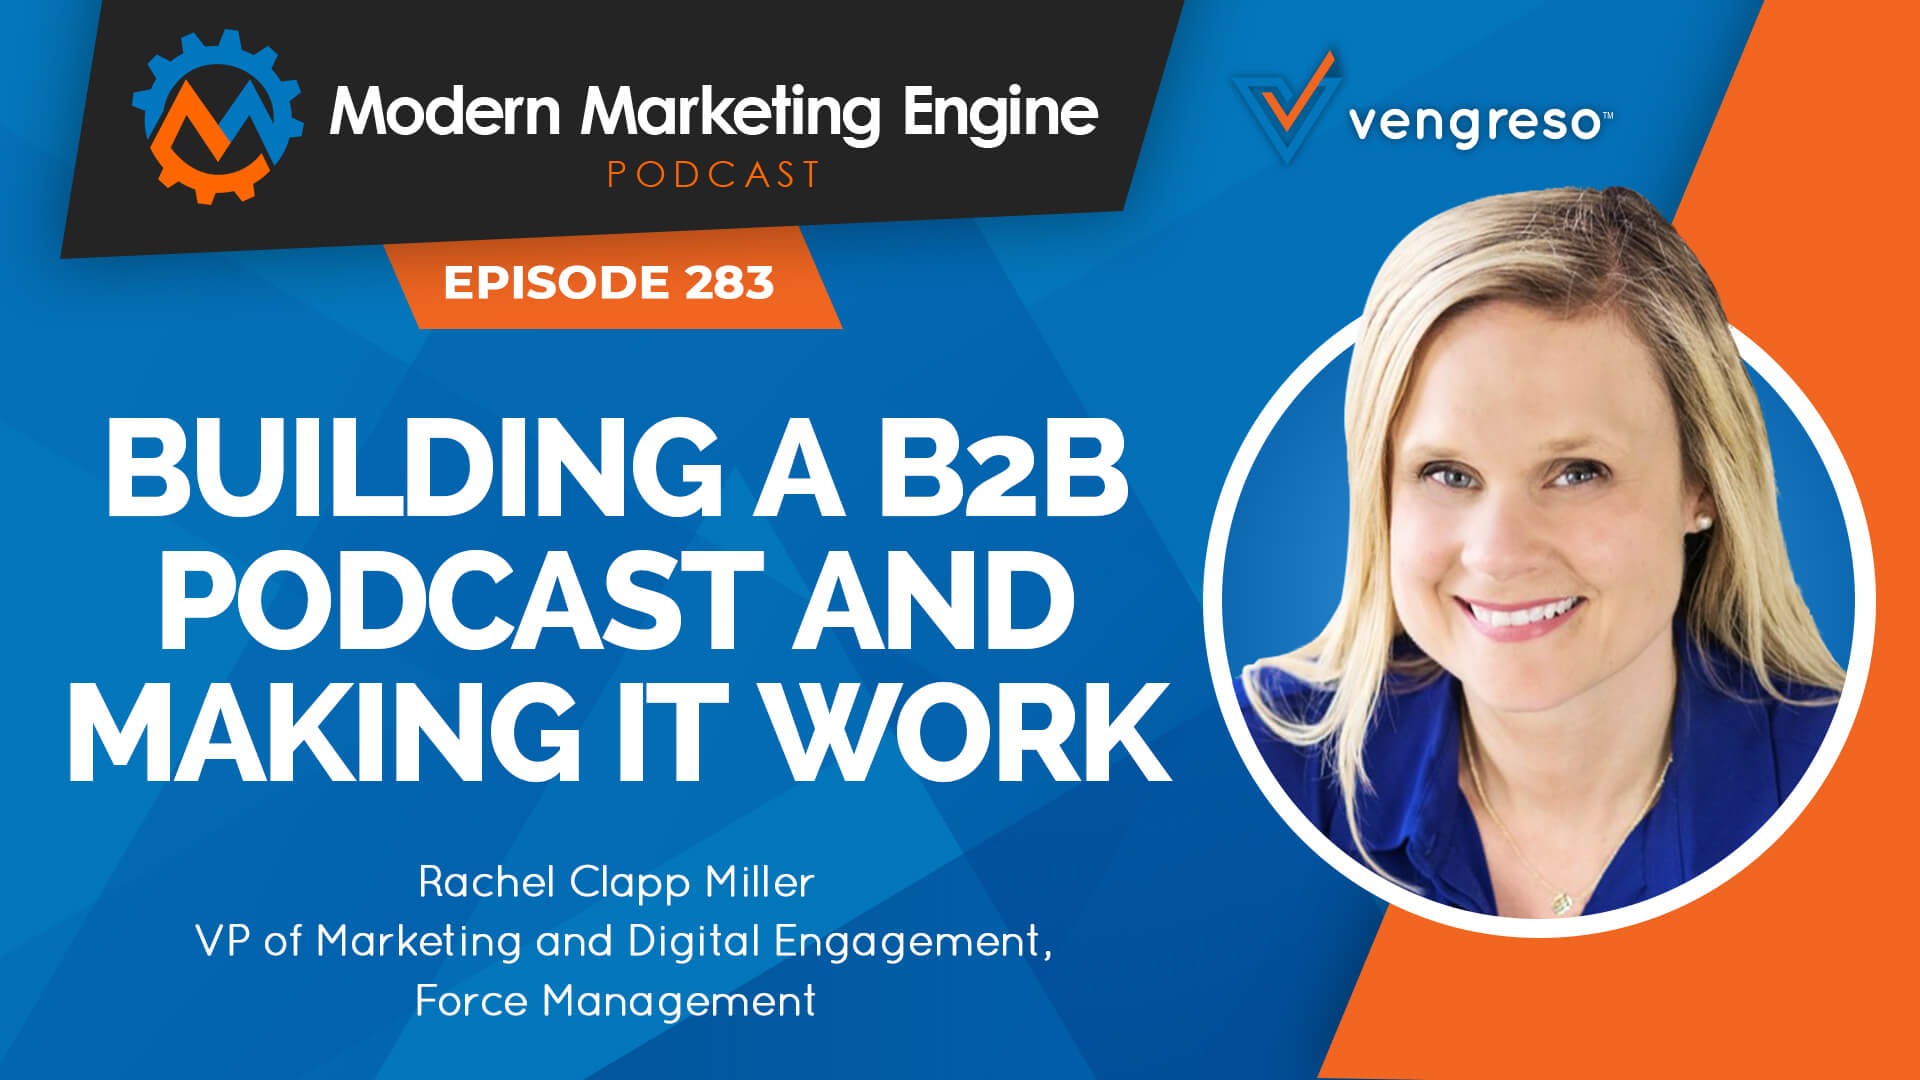 Building a B2B Podcast and Making it Work with Rachel Clapp Miller